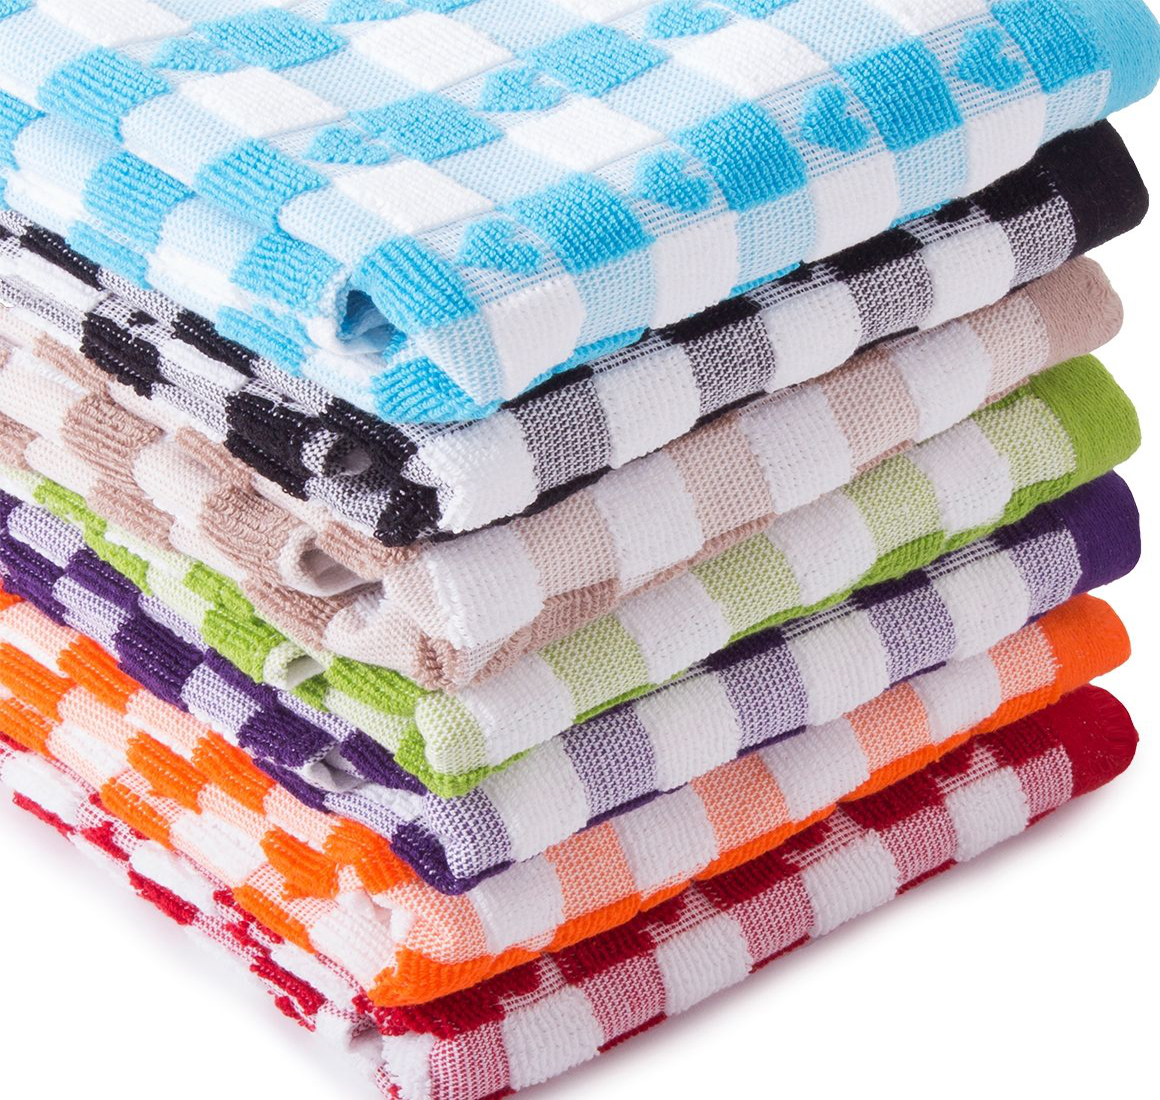 Delicieux Jacquard Luxury Heart Towels